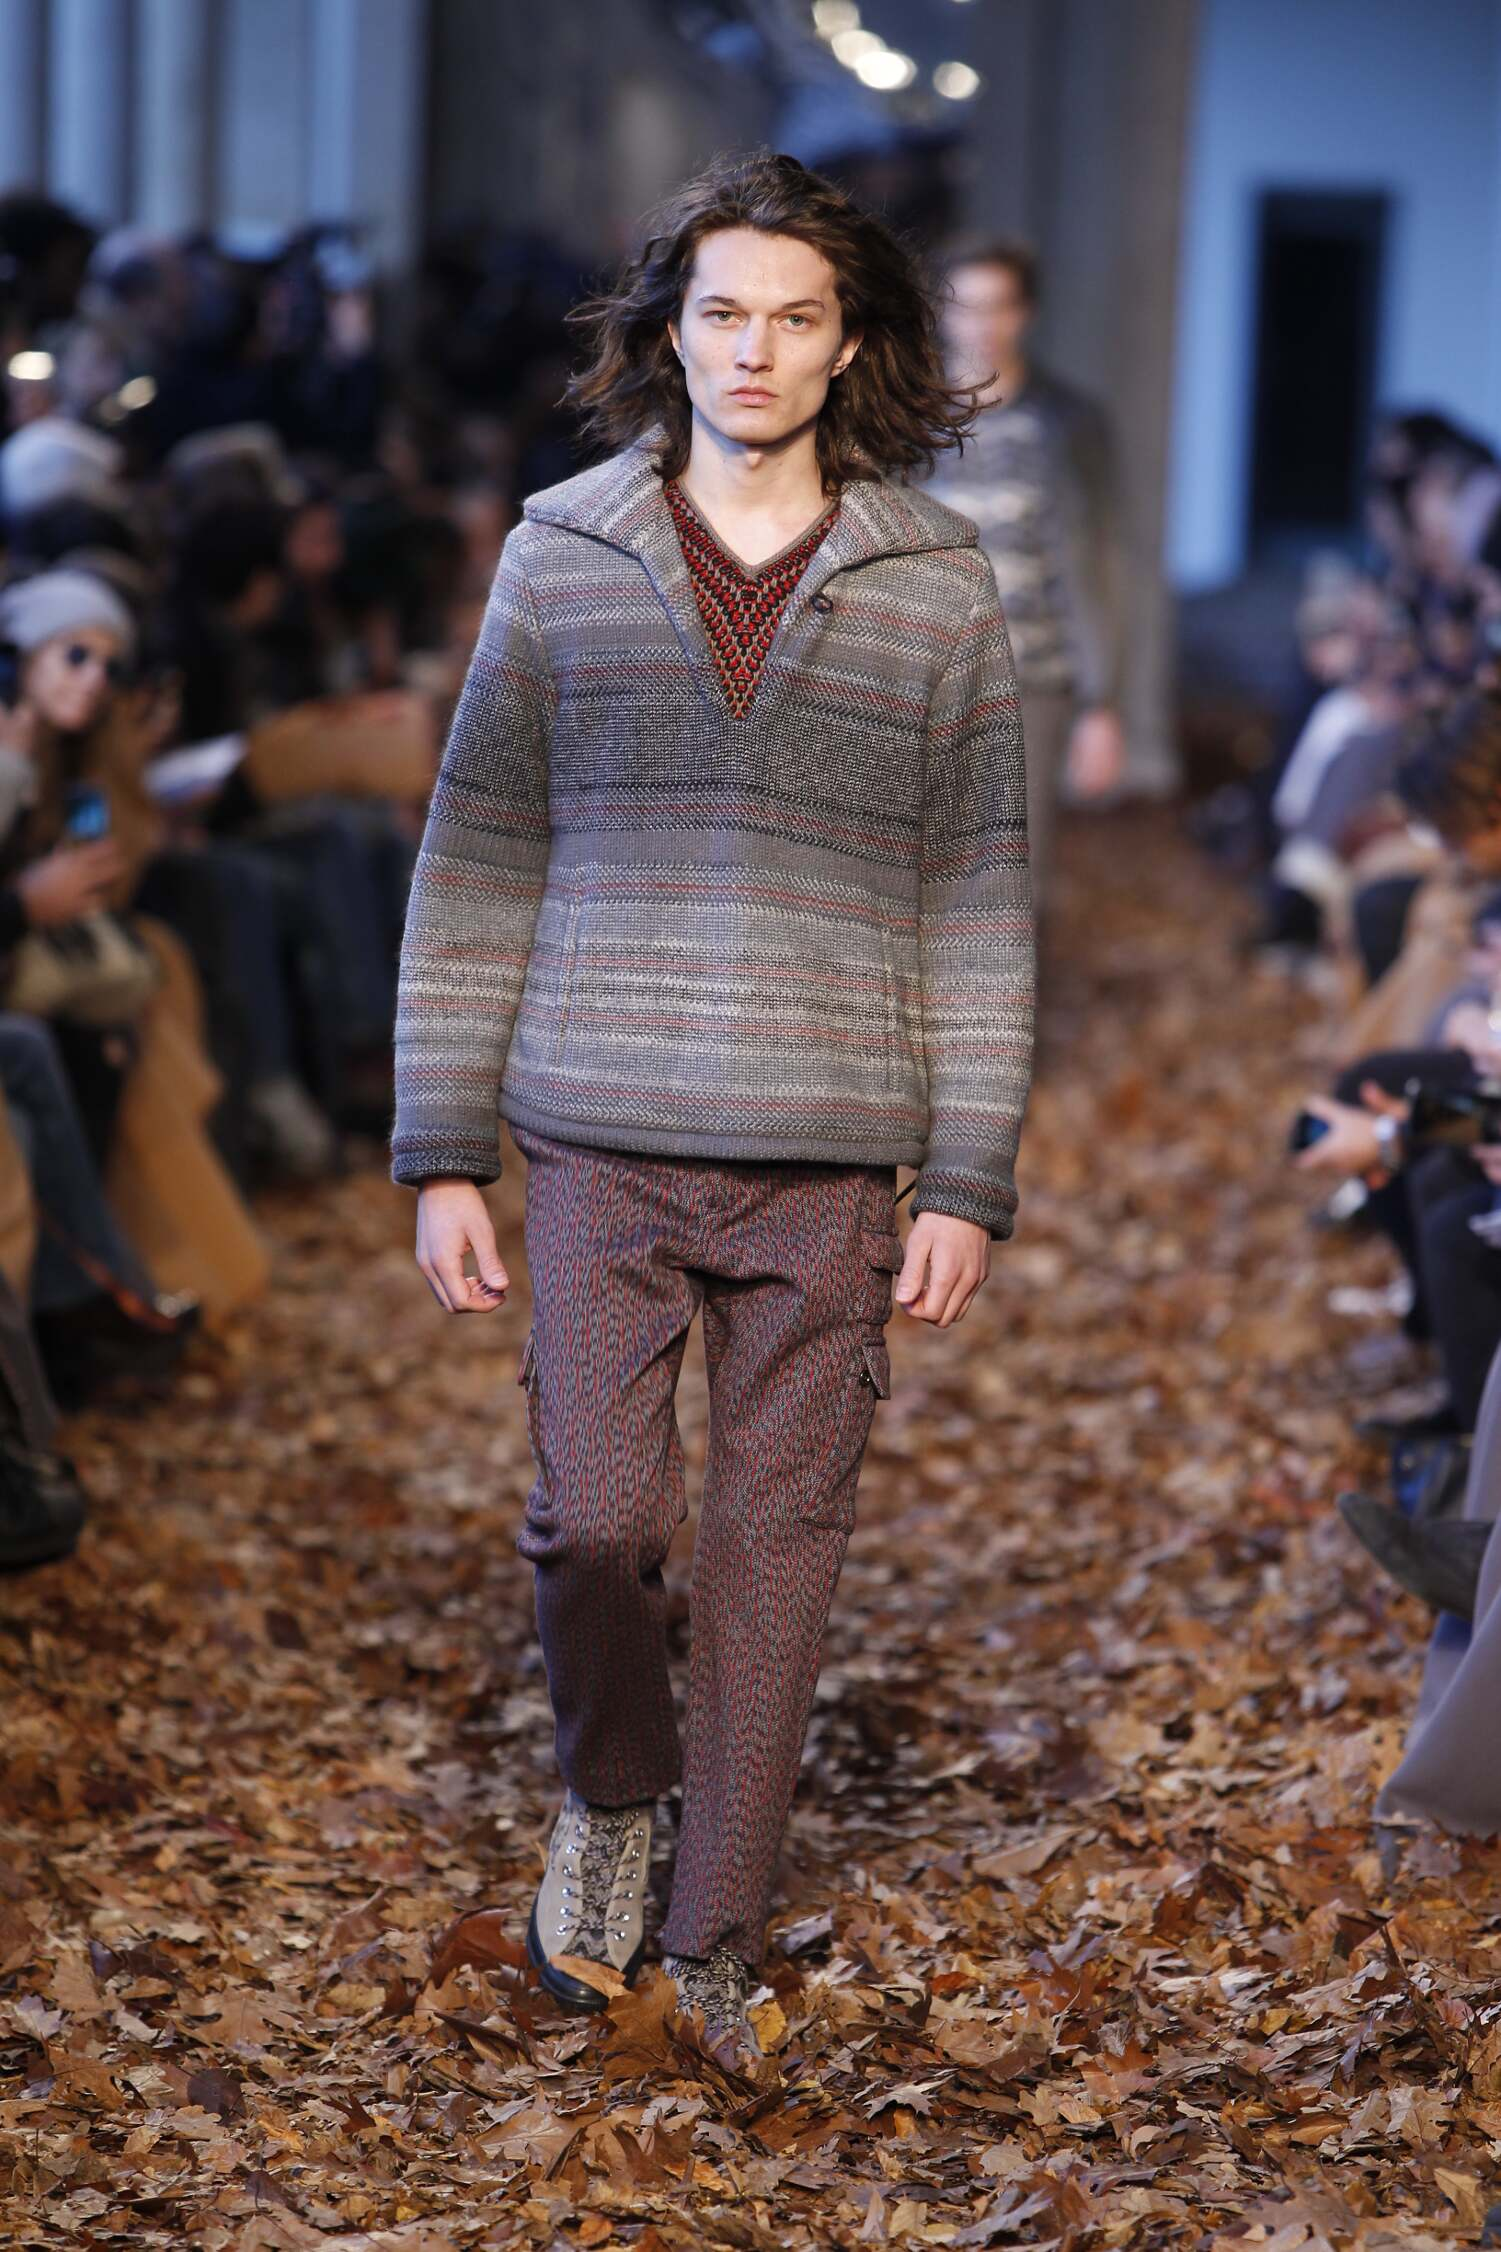 MISSONI FALL WINTER 2016-17 MEN'S COLLECTION